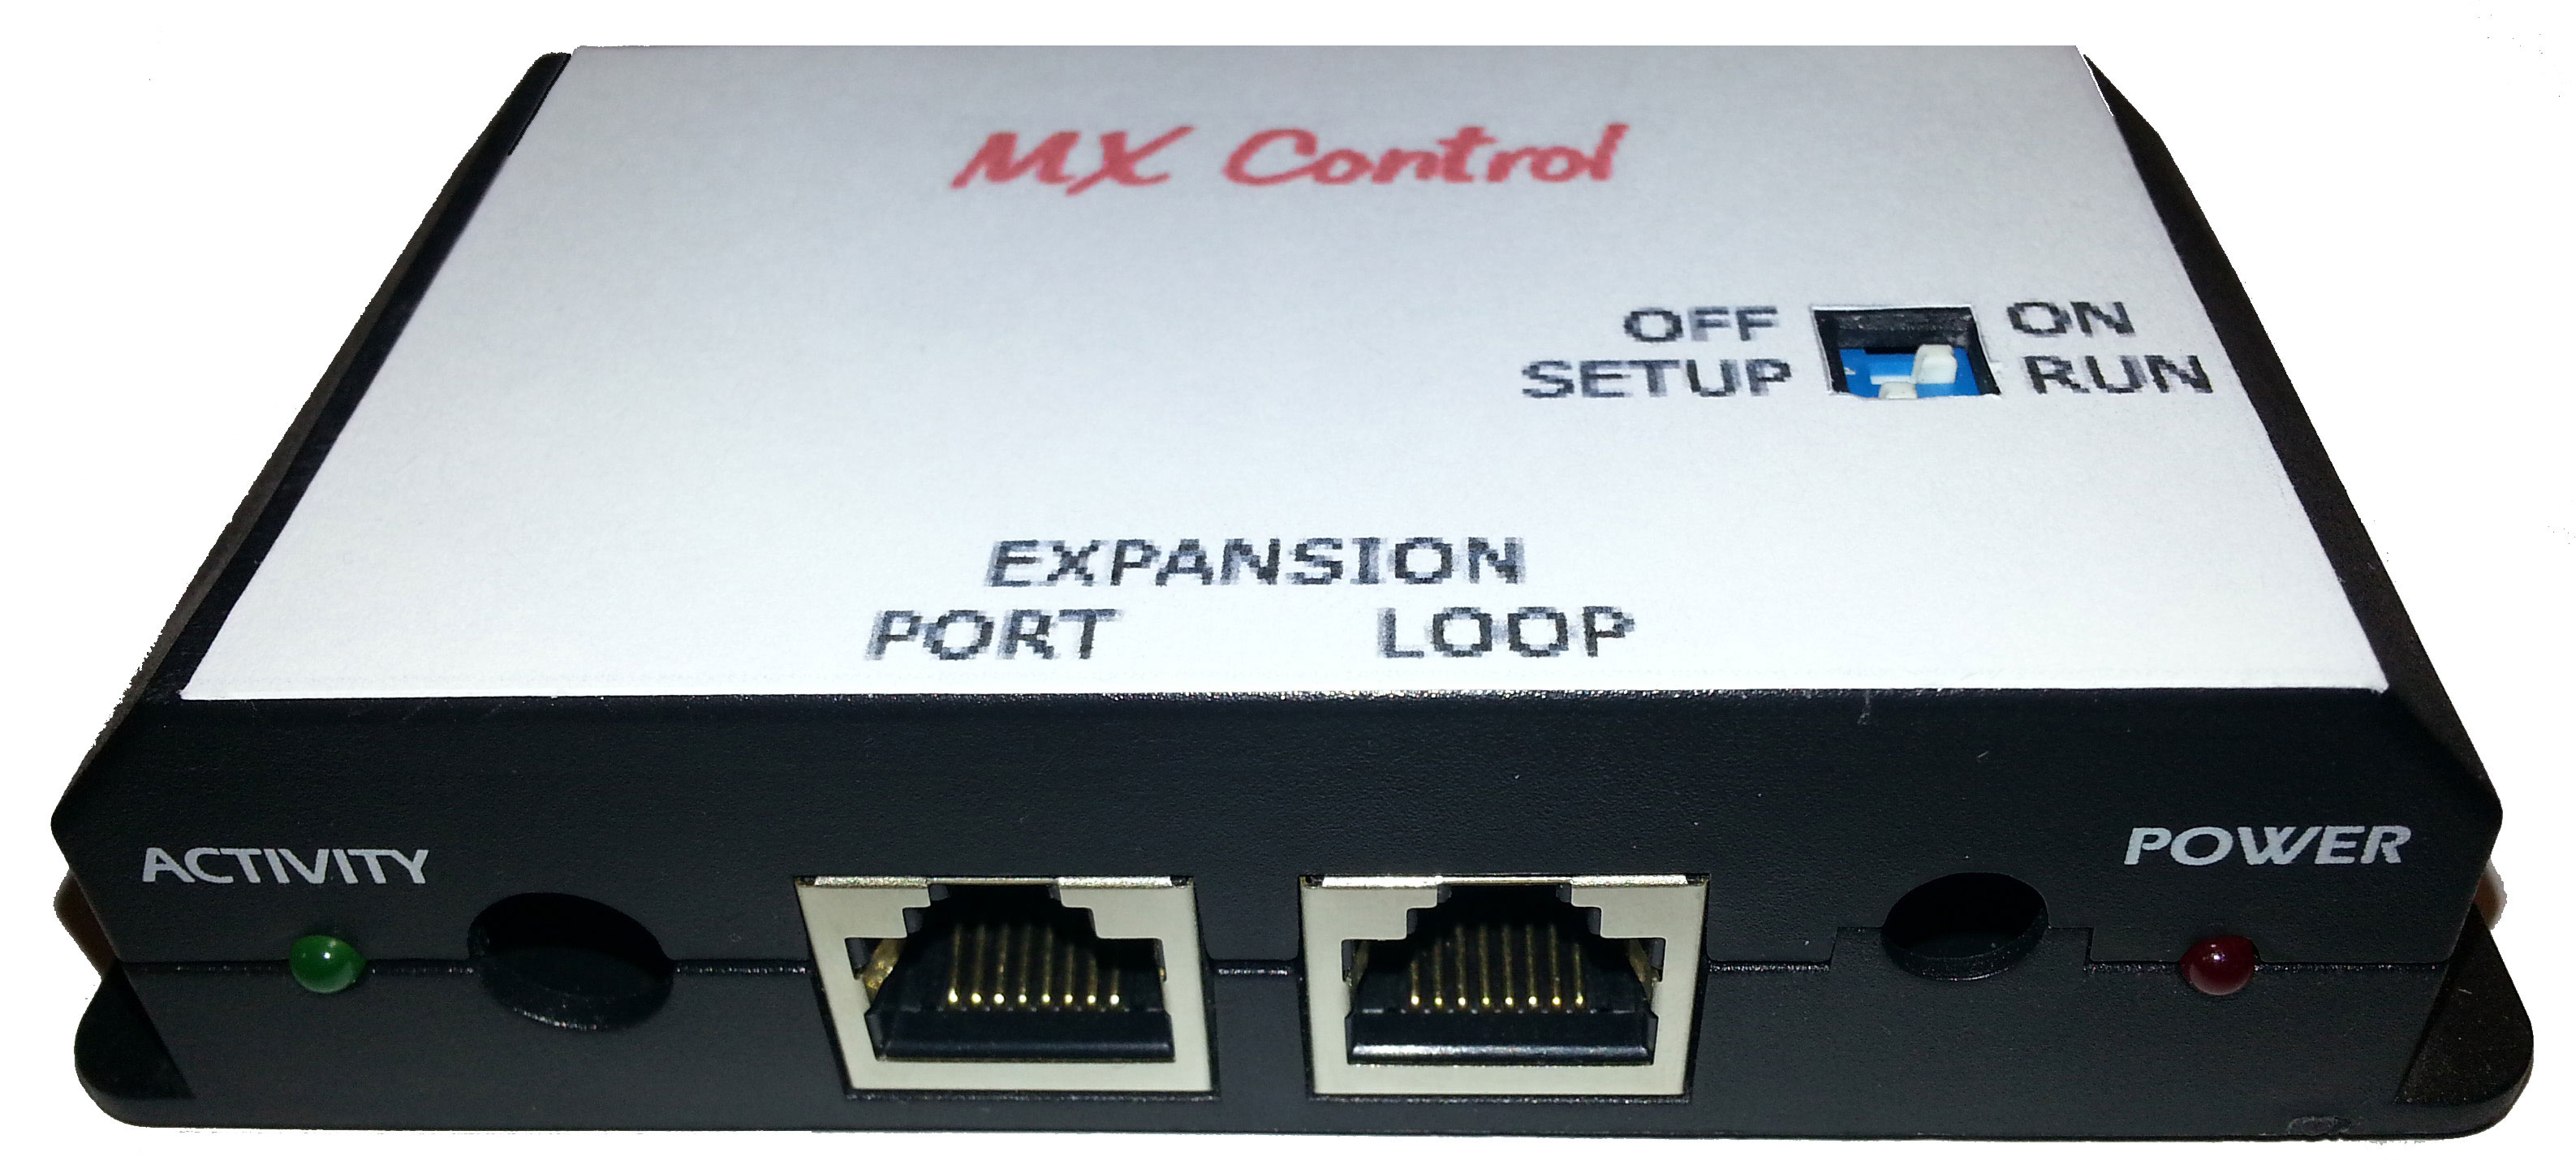 MX Control Device Picture